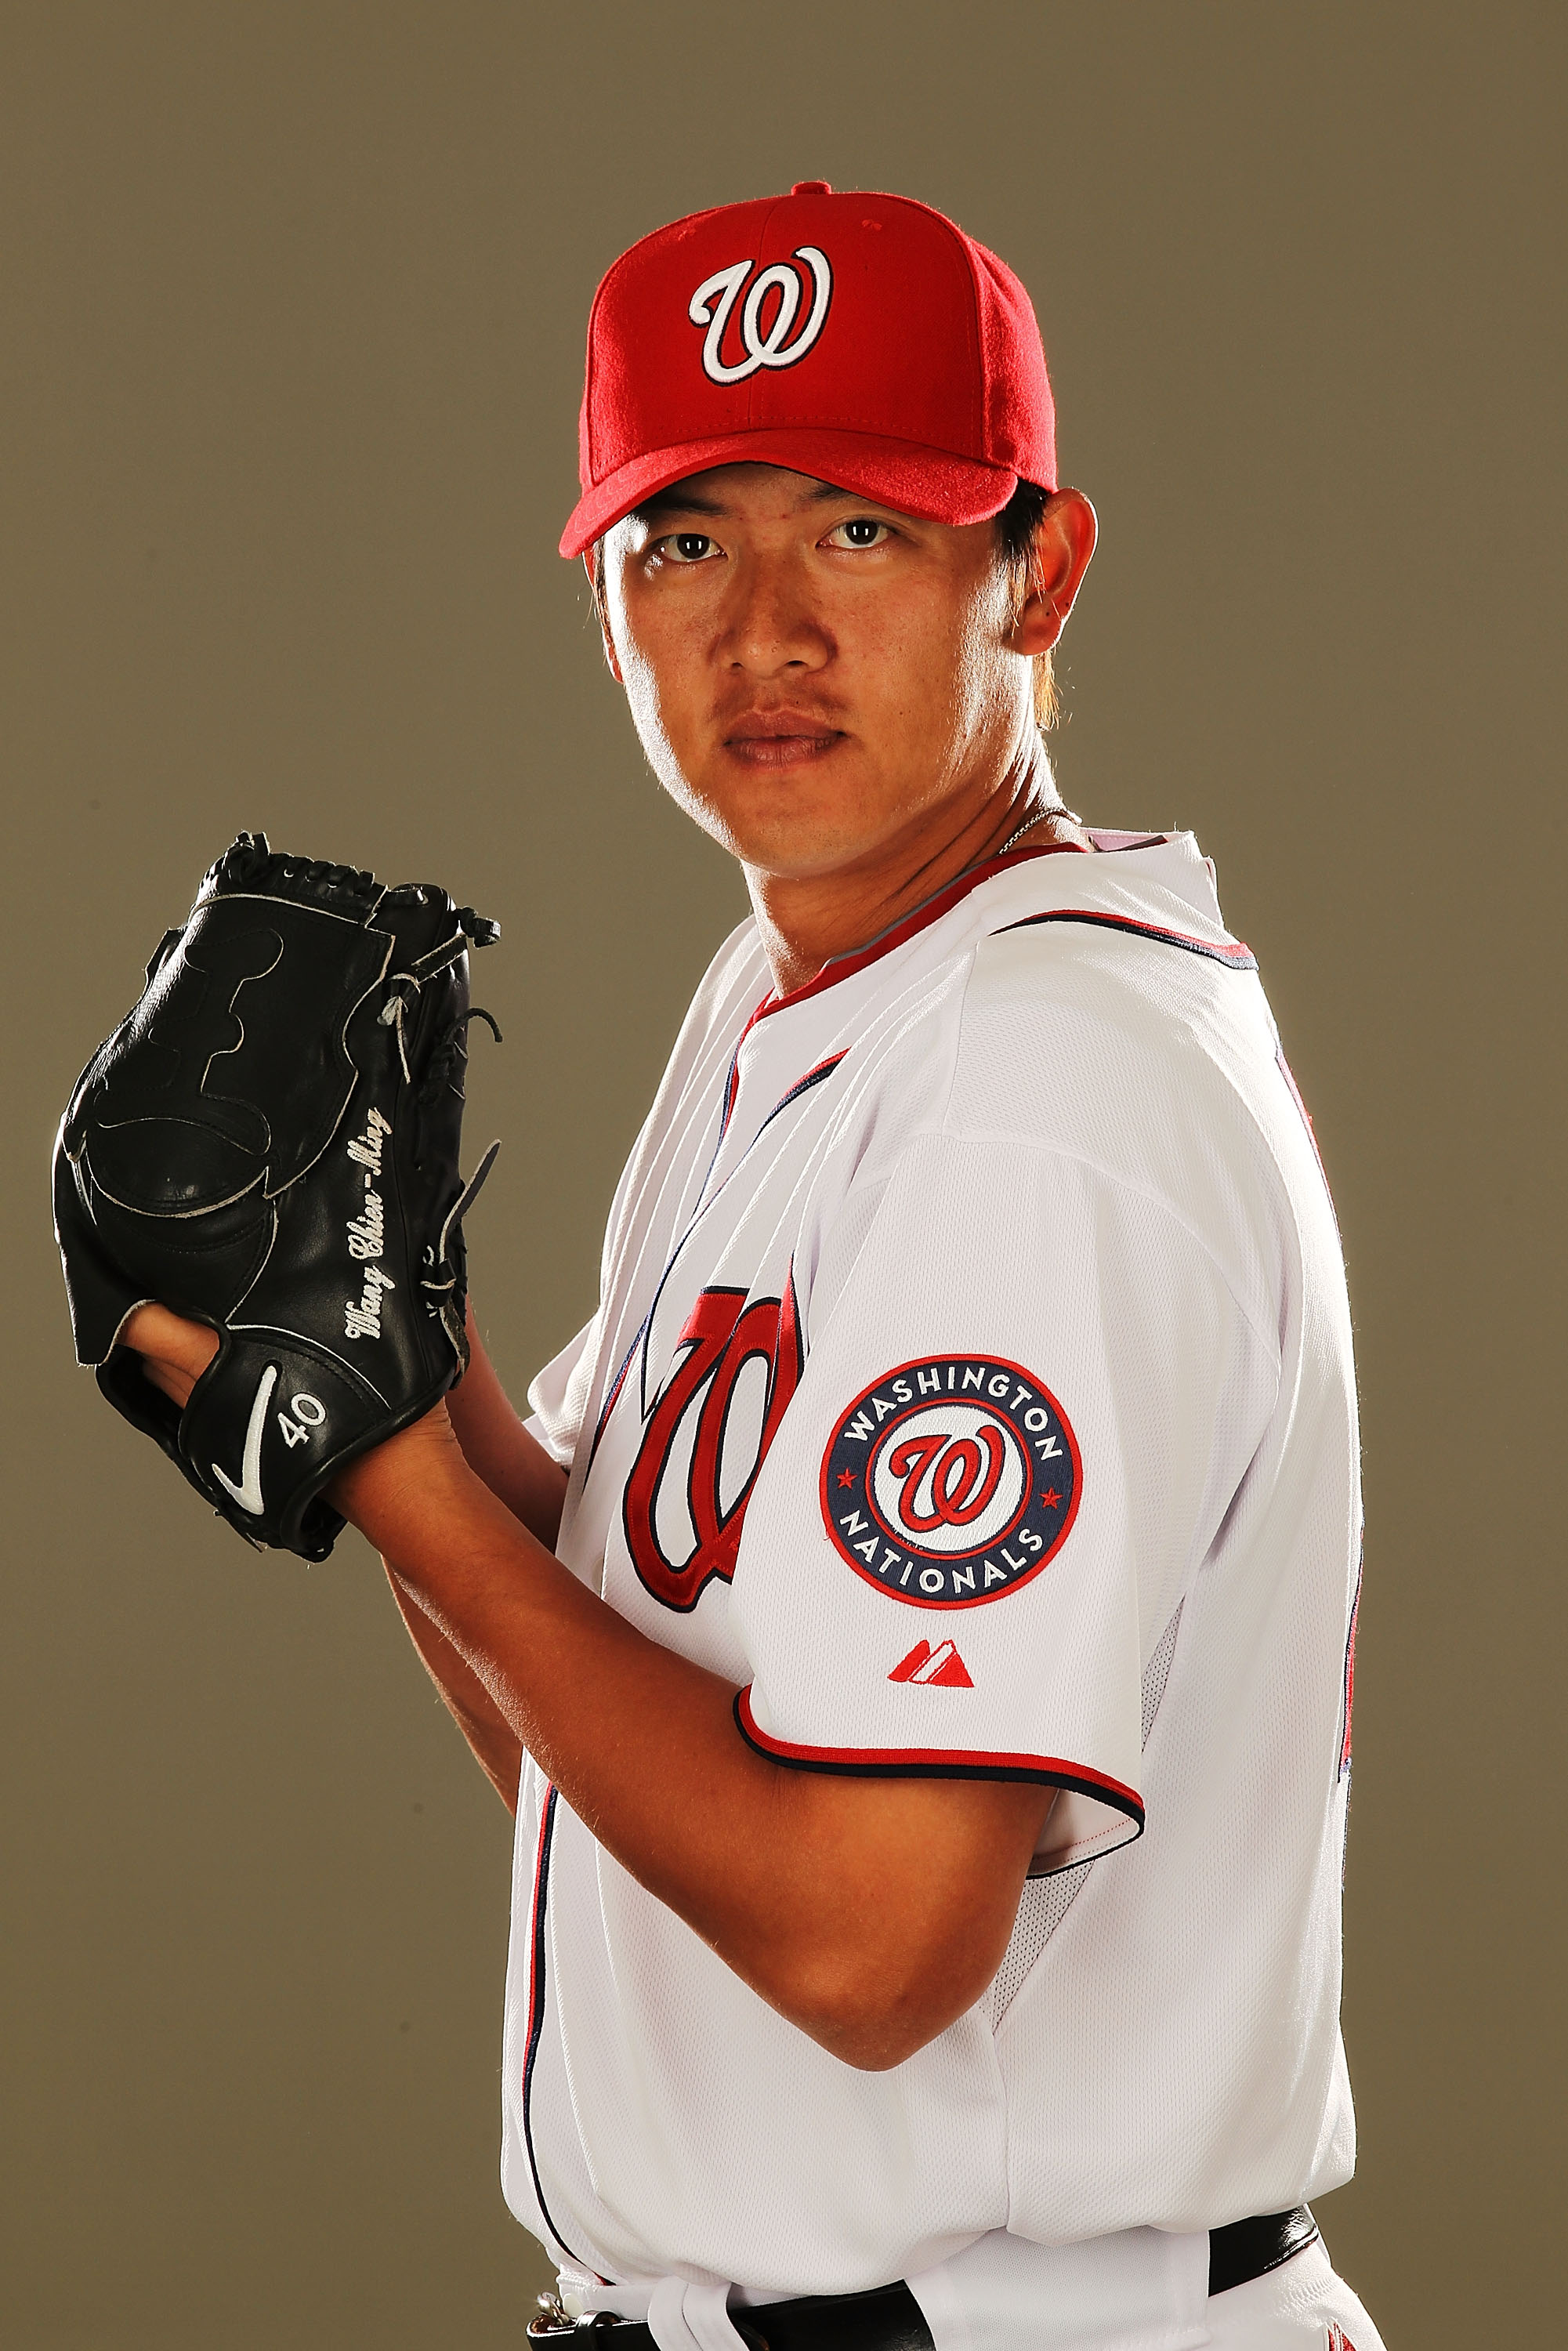 VIERA, FL - FEBRUARY 25:  Chien-Ming Wang #40 of the Washington Nationals poses for a portrait during Spring Training Photo Day at Space Coast Stadium on February 25, 2011 in Viera, Florida.  (Photo by Al Bello/Getty Images)